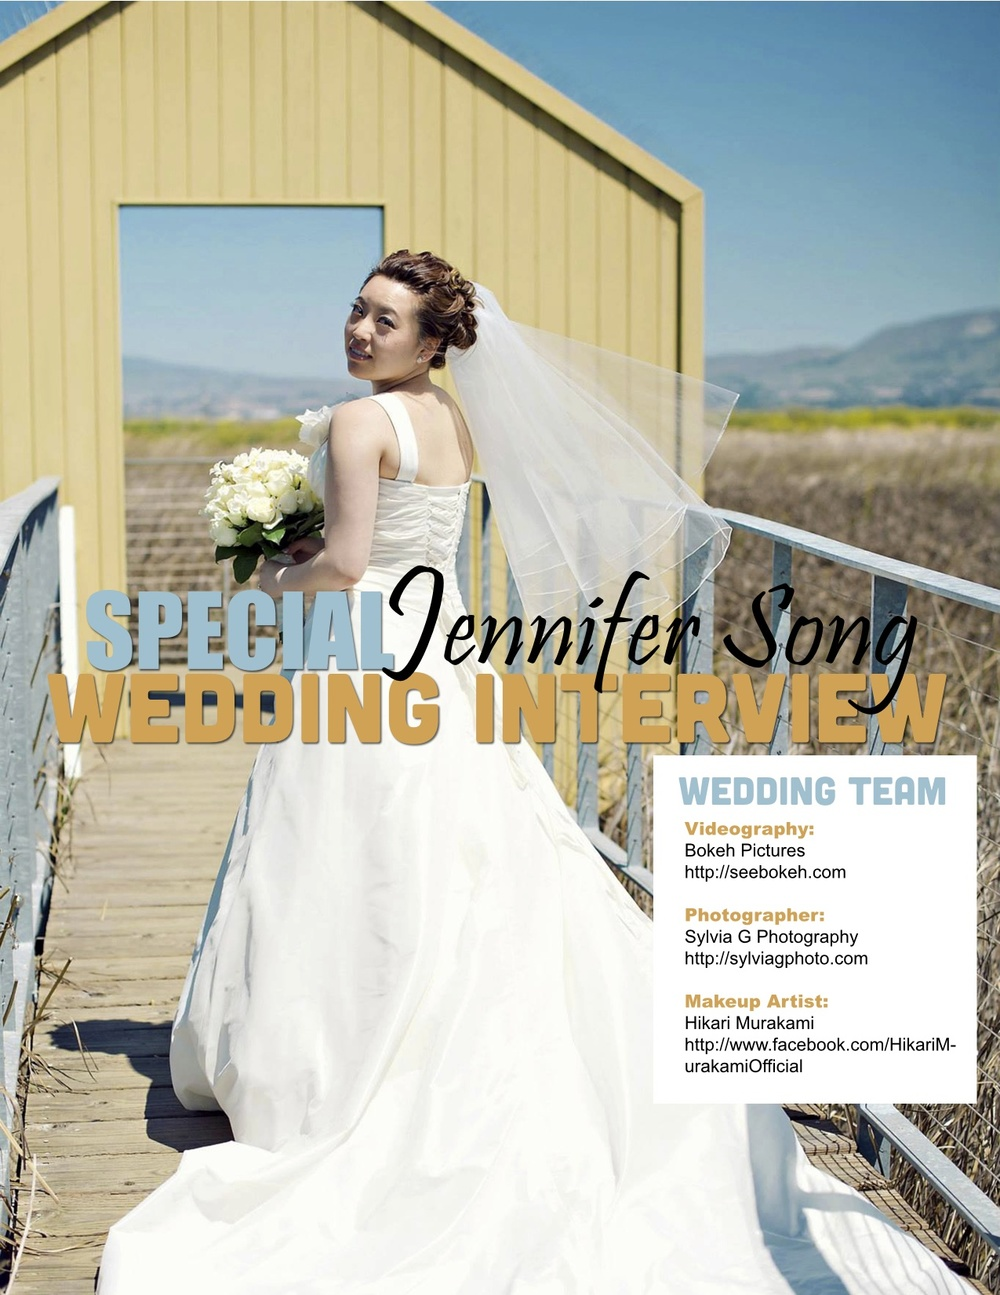 Jennifer-wedding-layout.jpg